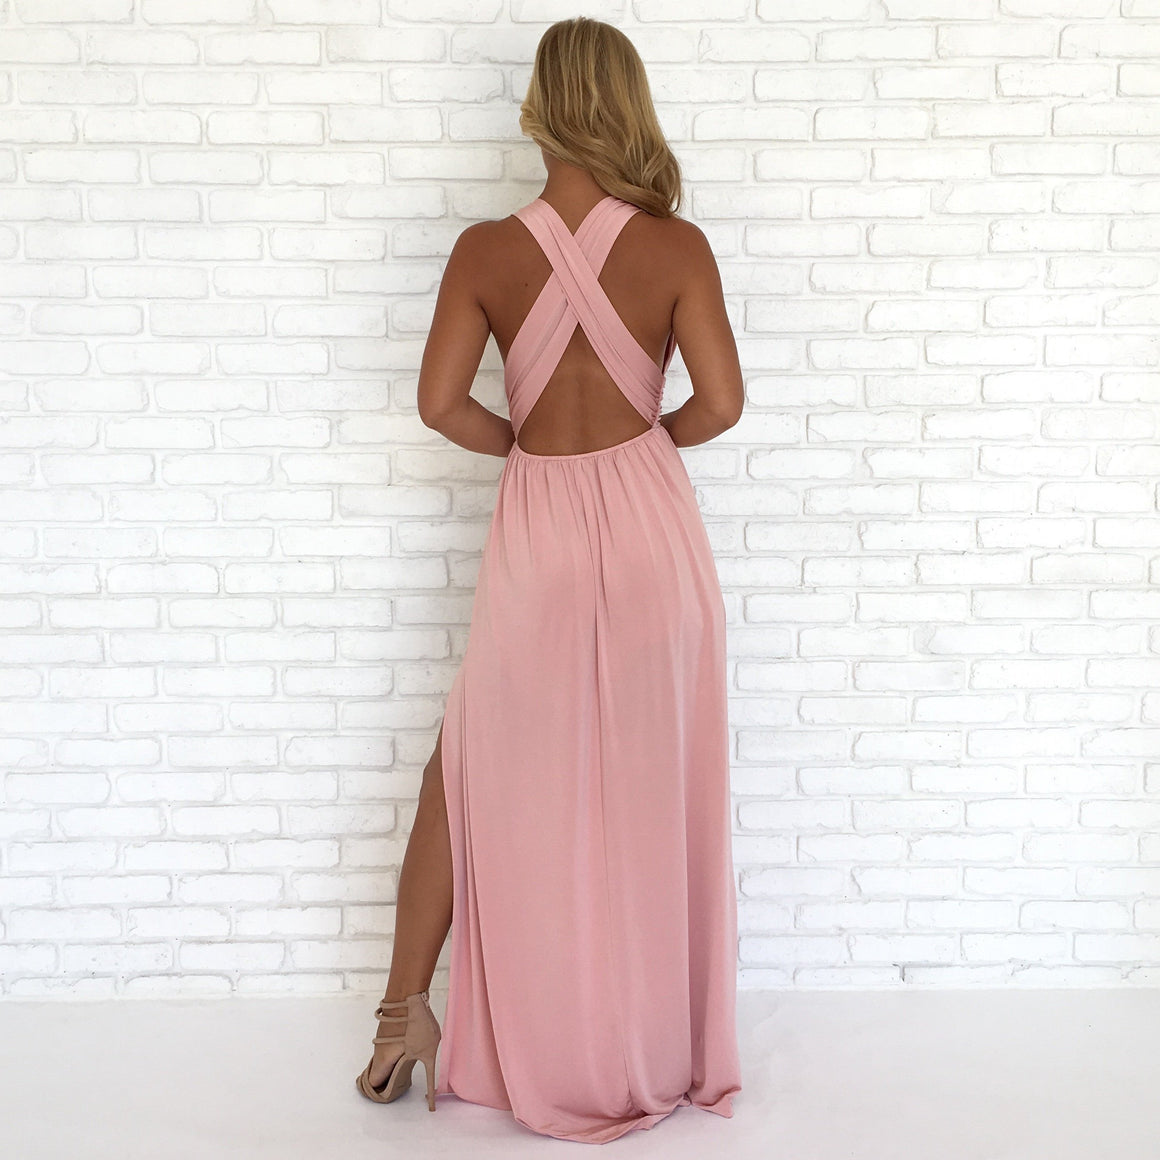 Always Your Girl Maxi Dress In Pink - Dainty Hooligan